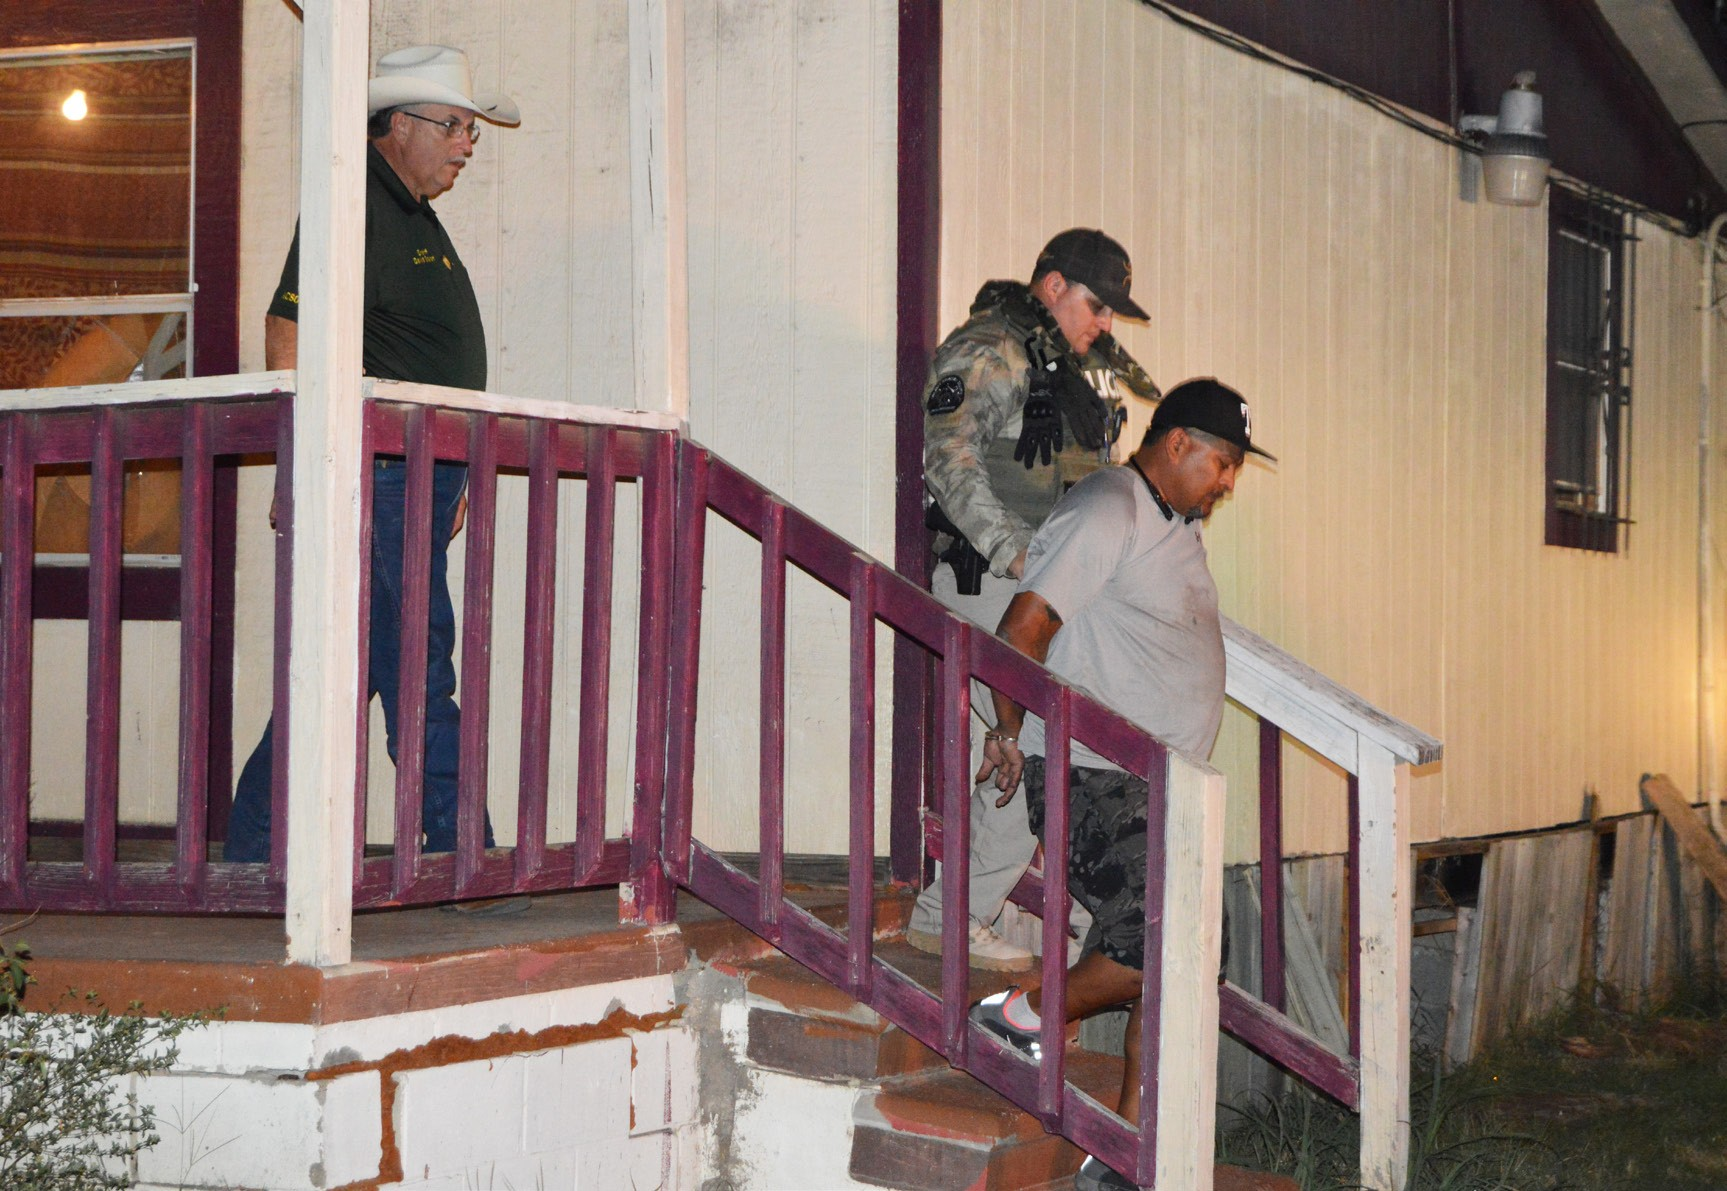 Sheriff David Soward and Deputy J. D. Ruiz lead suspect Paul Belmon out of an illegal gaming house after a Saturday night raid on the business located at 10822 N. Hwy. 281.